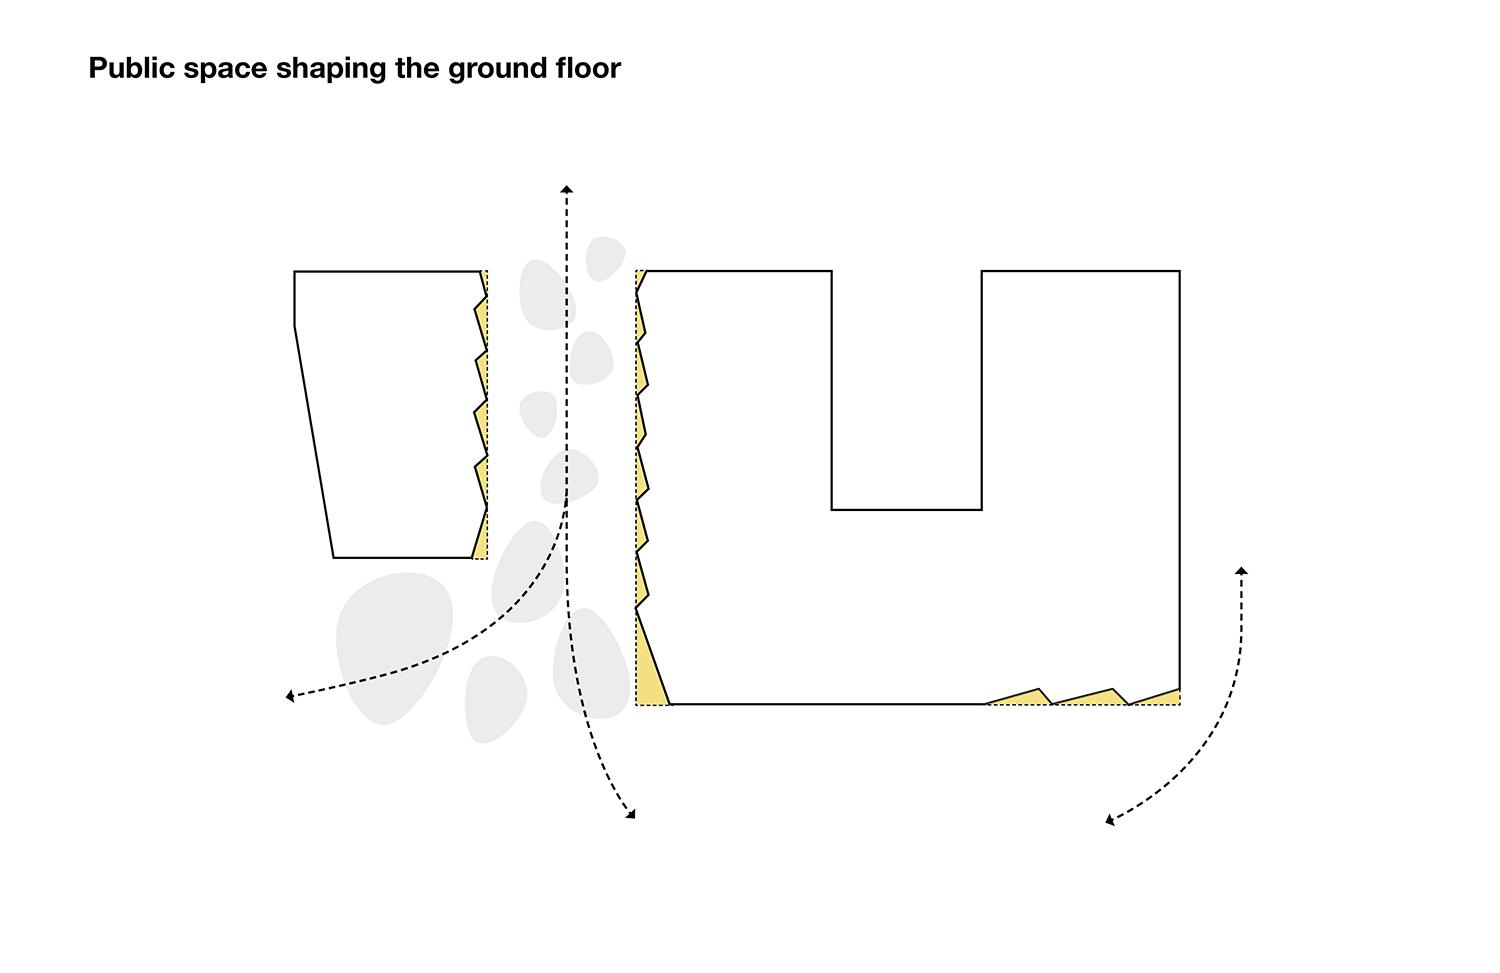 diagram of how the public space will be shaped on the ground floor